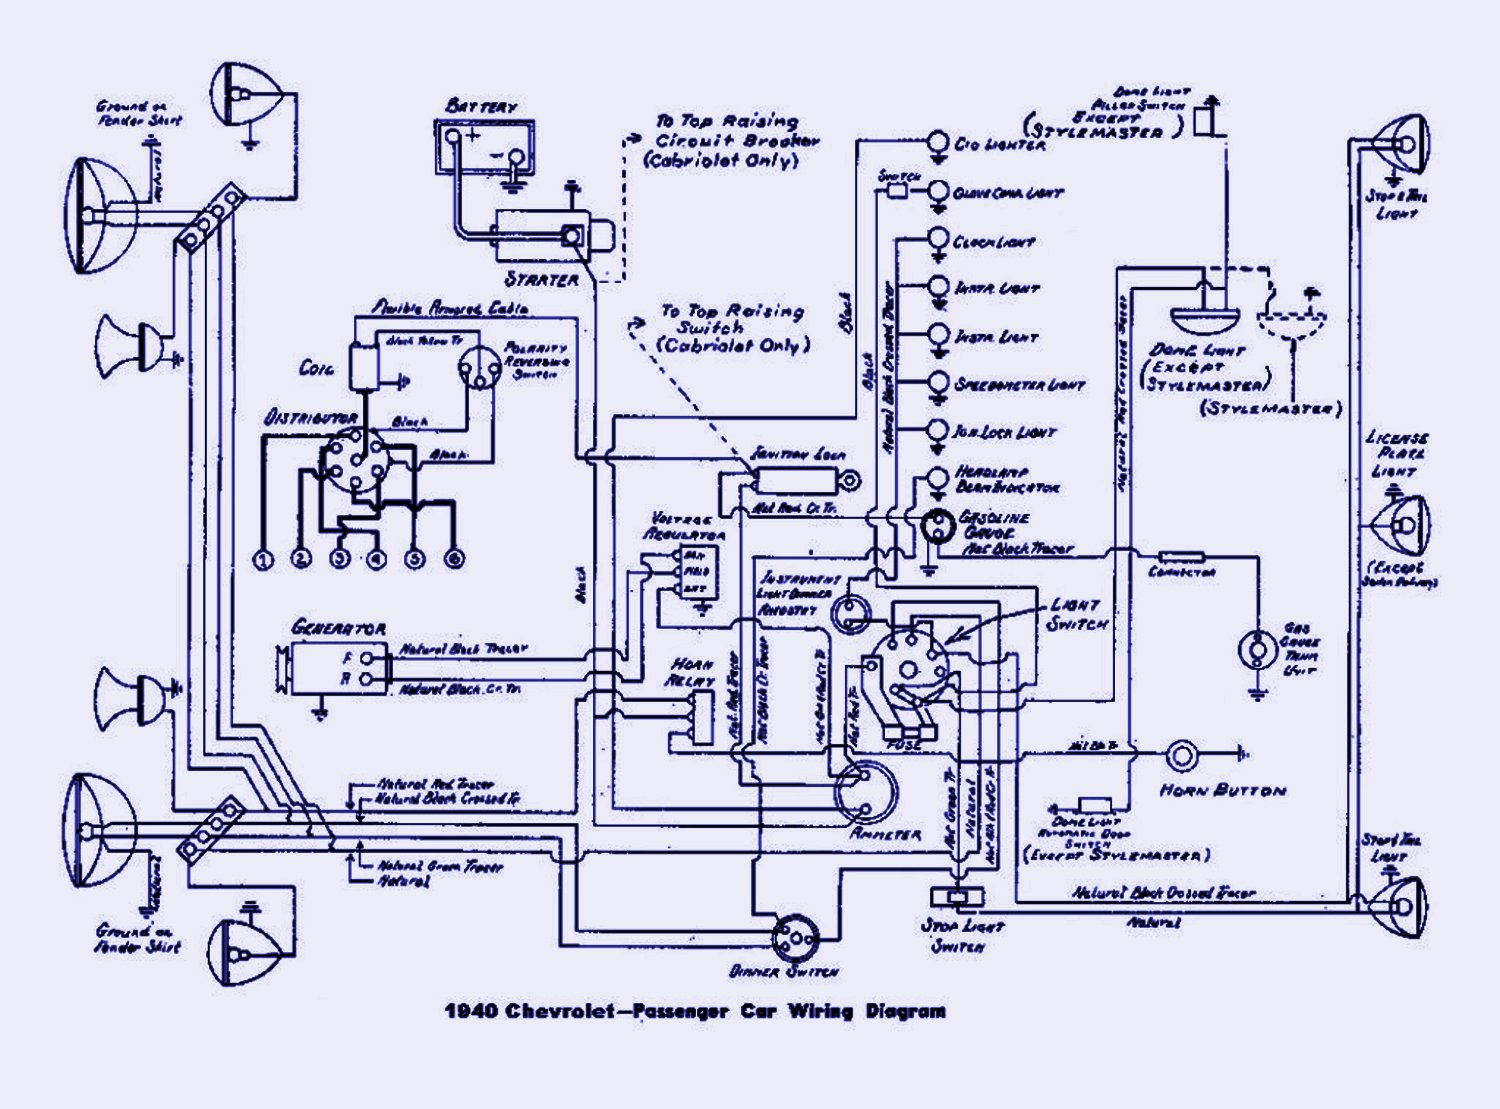 1978 Chevrolet Ignition Switch Wiring Diagram